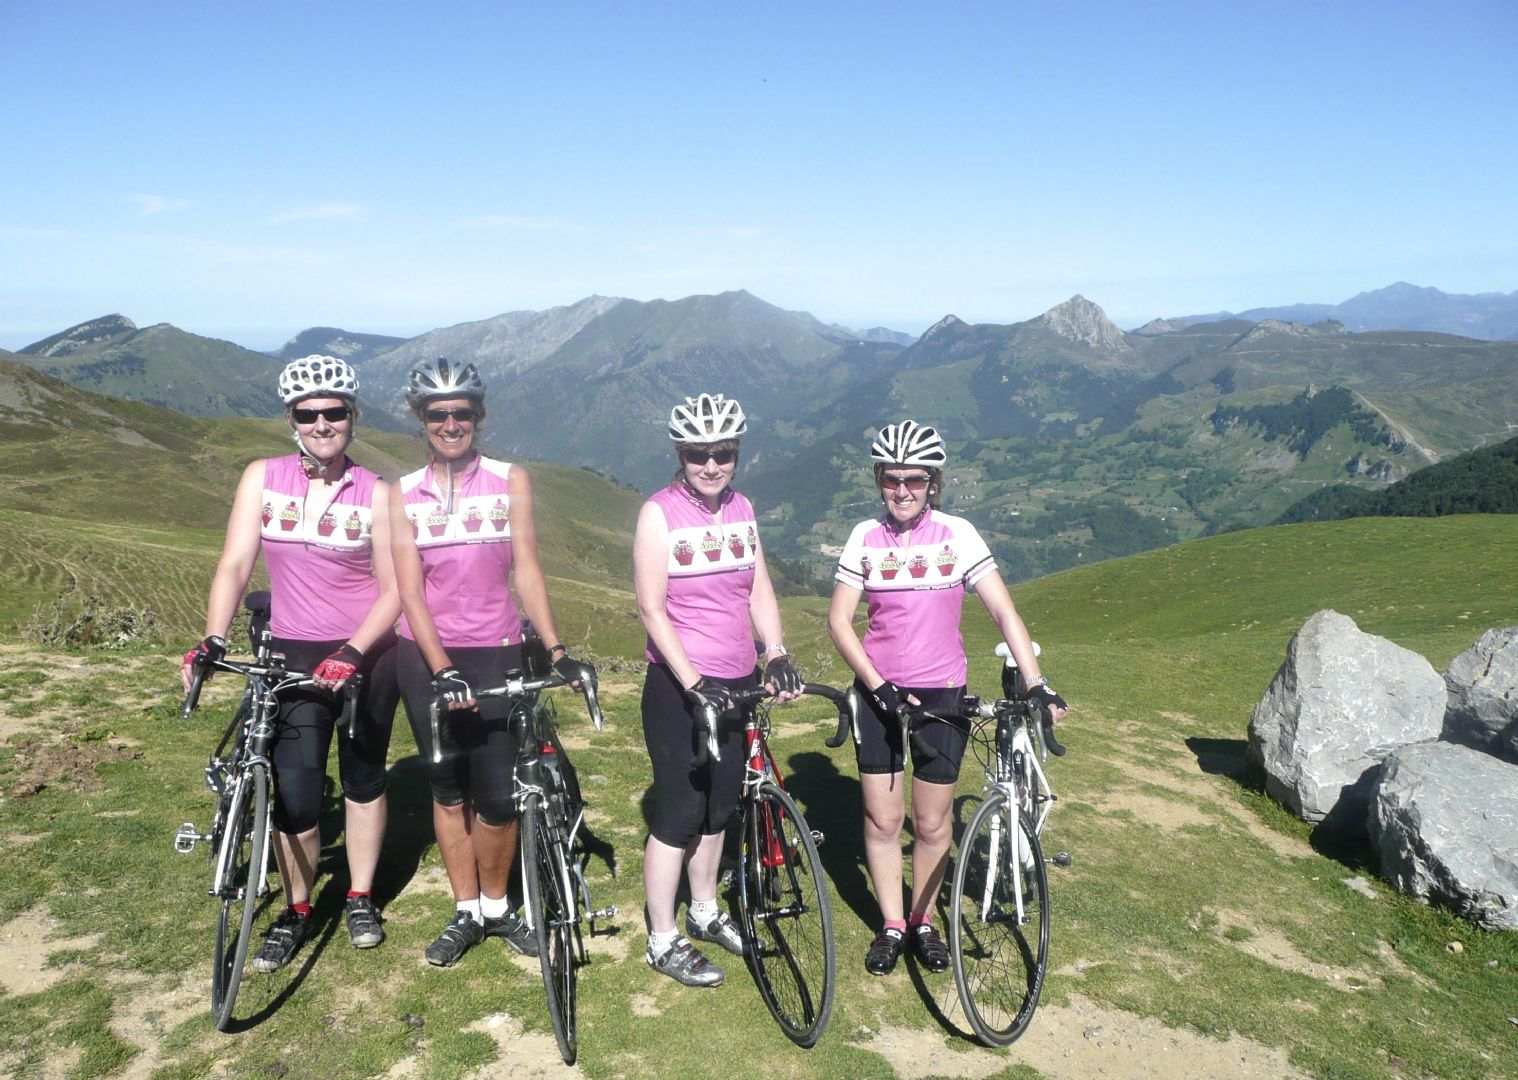 Pyrenees Classic Road Cycling 30.jpg - France - Trans Pyrenees Challenge - Guided Road Cycling Holiday - Road Cycling